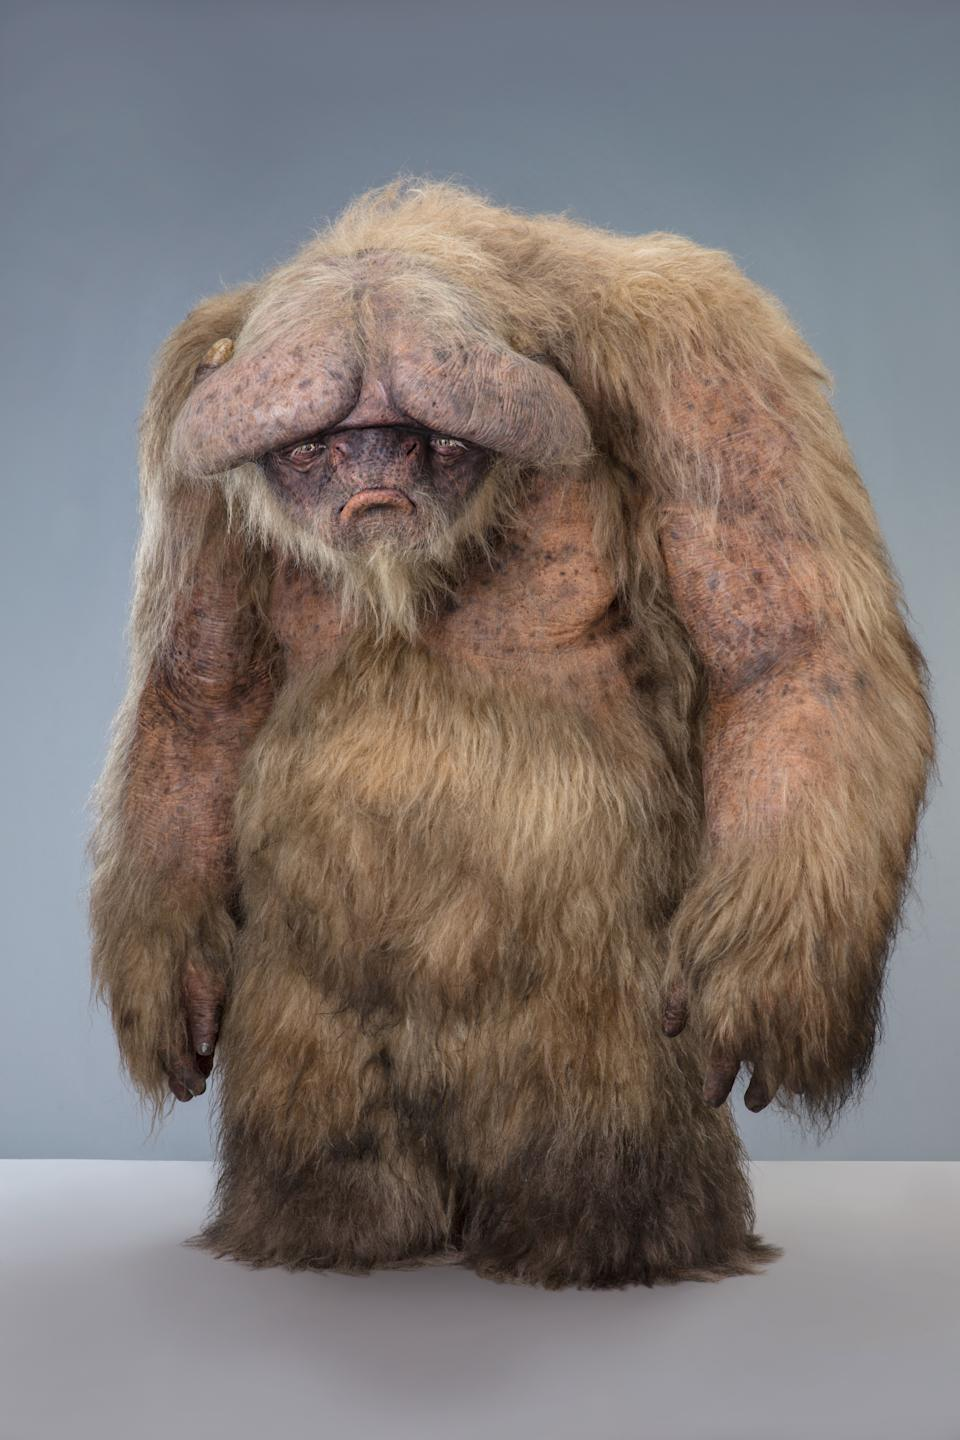 Scanlan and his F/X team created this 'The Rise of Skywalker' creature as an homage to Ludo from 'Labyrinth' (Photo: Lucasfilm Ltd.)